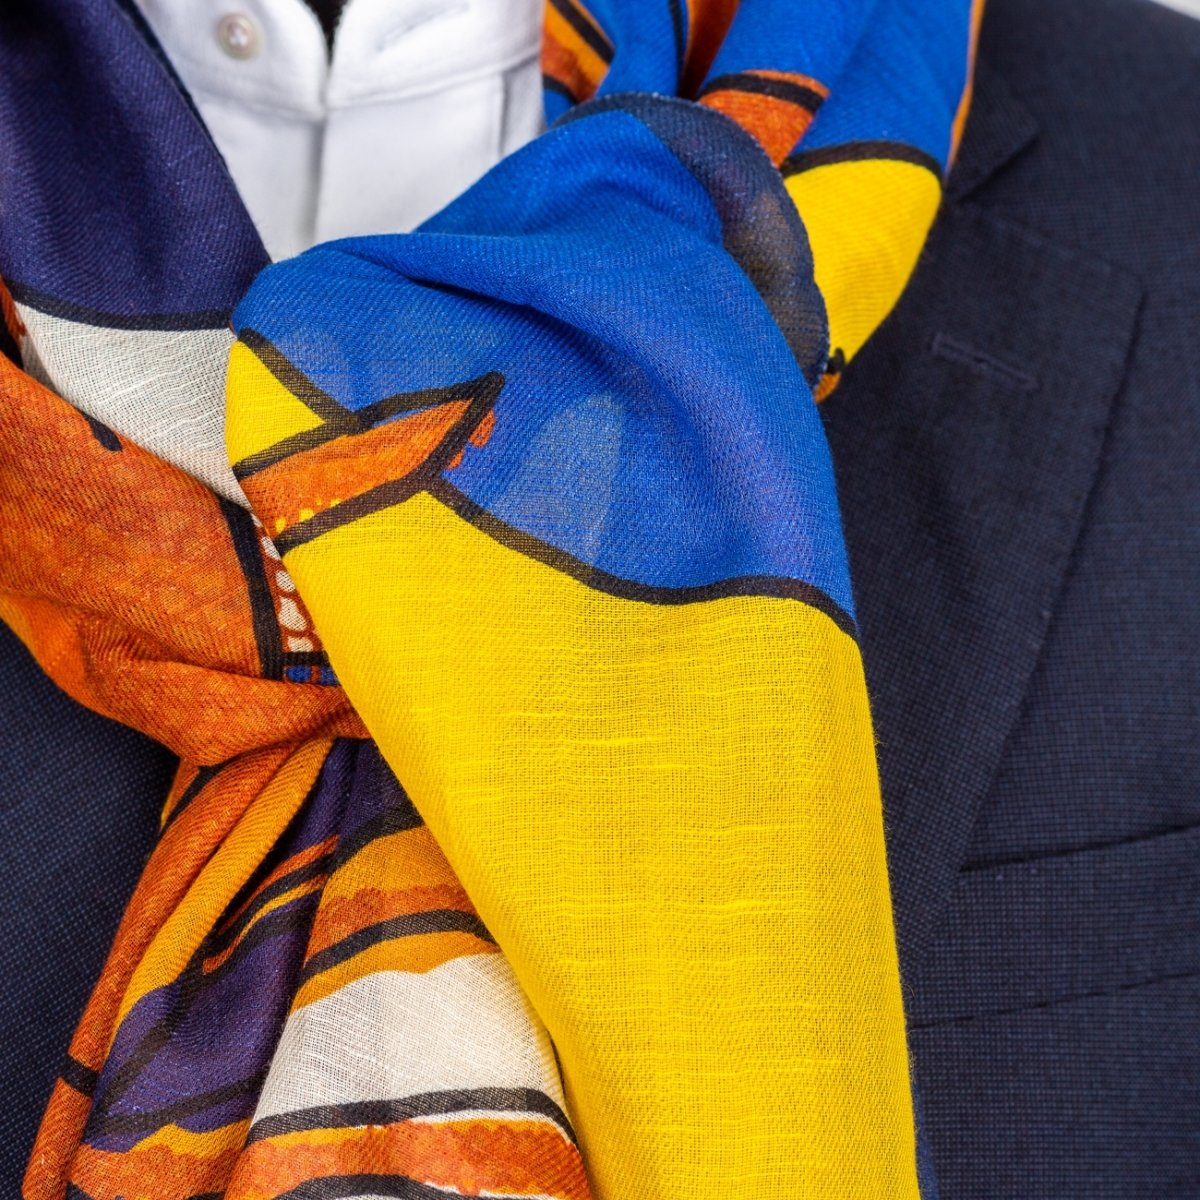 Drake's - Shawl, Orange, Yellow and Blue Lobster Print Cotton-Linen, Shawl | NEW TAILOR Webshop